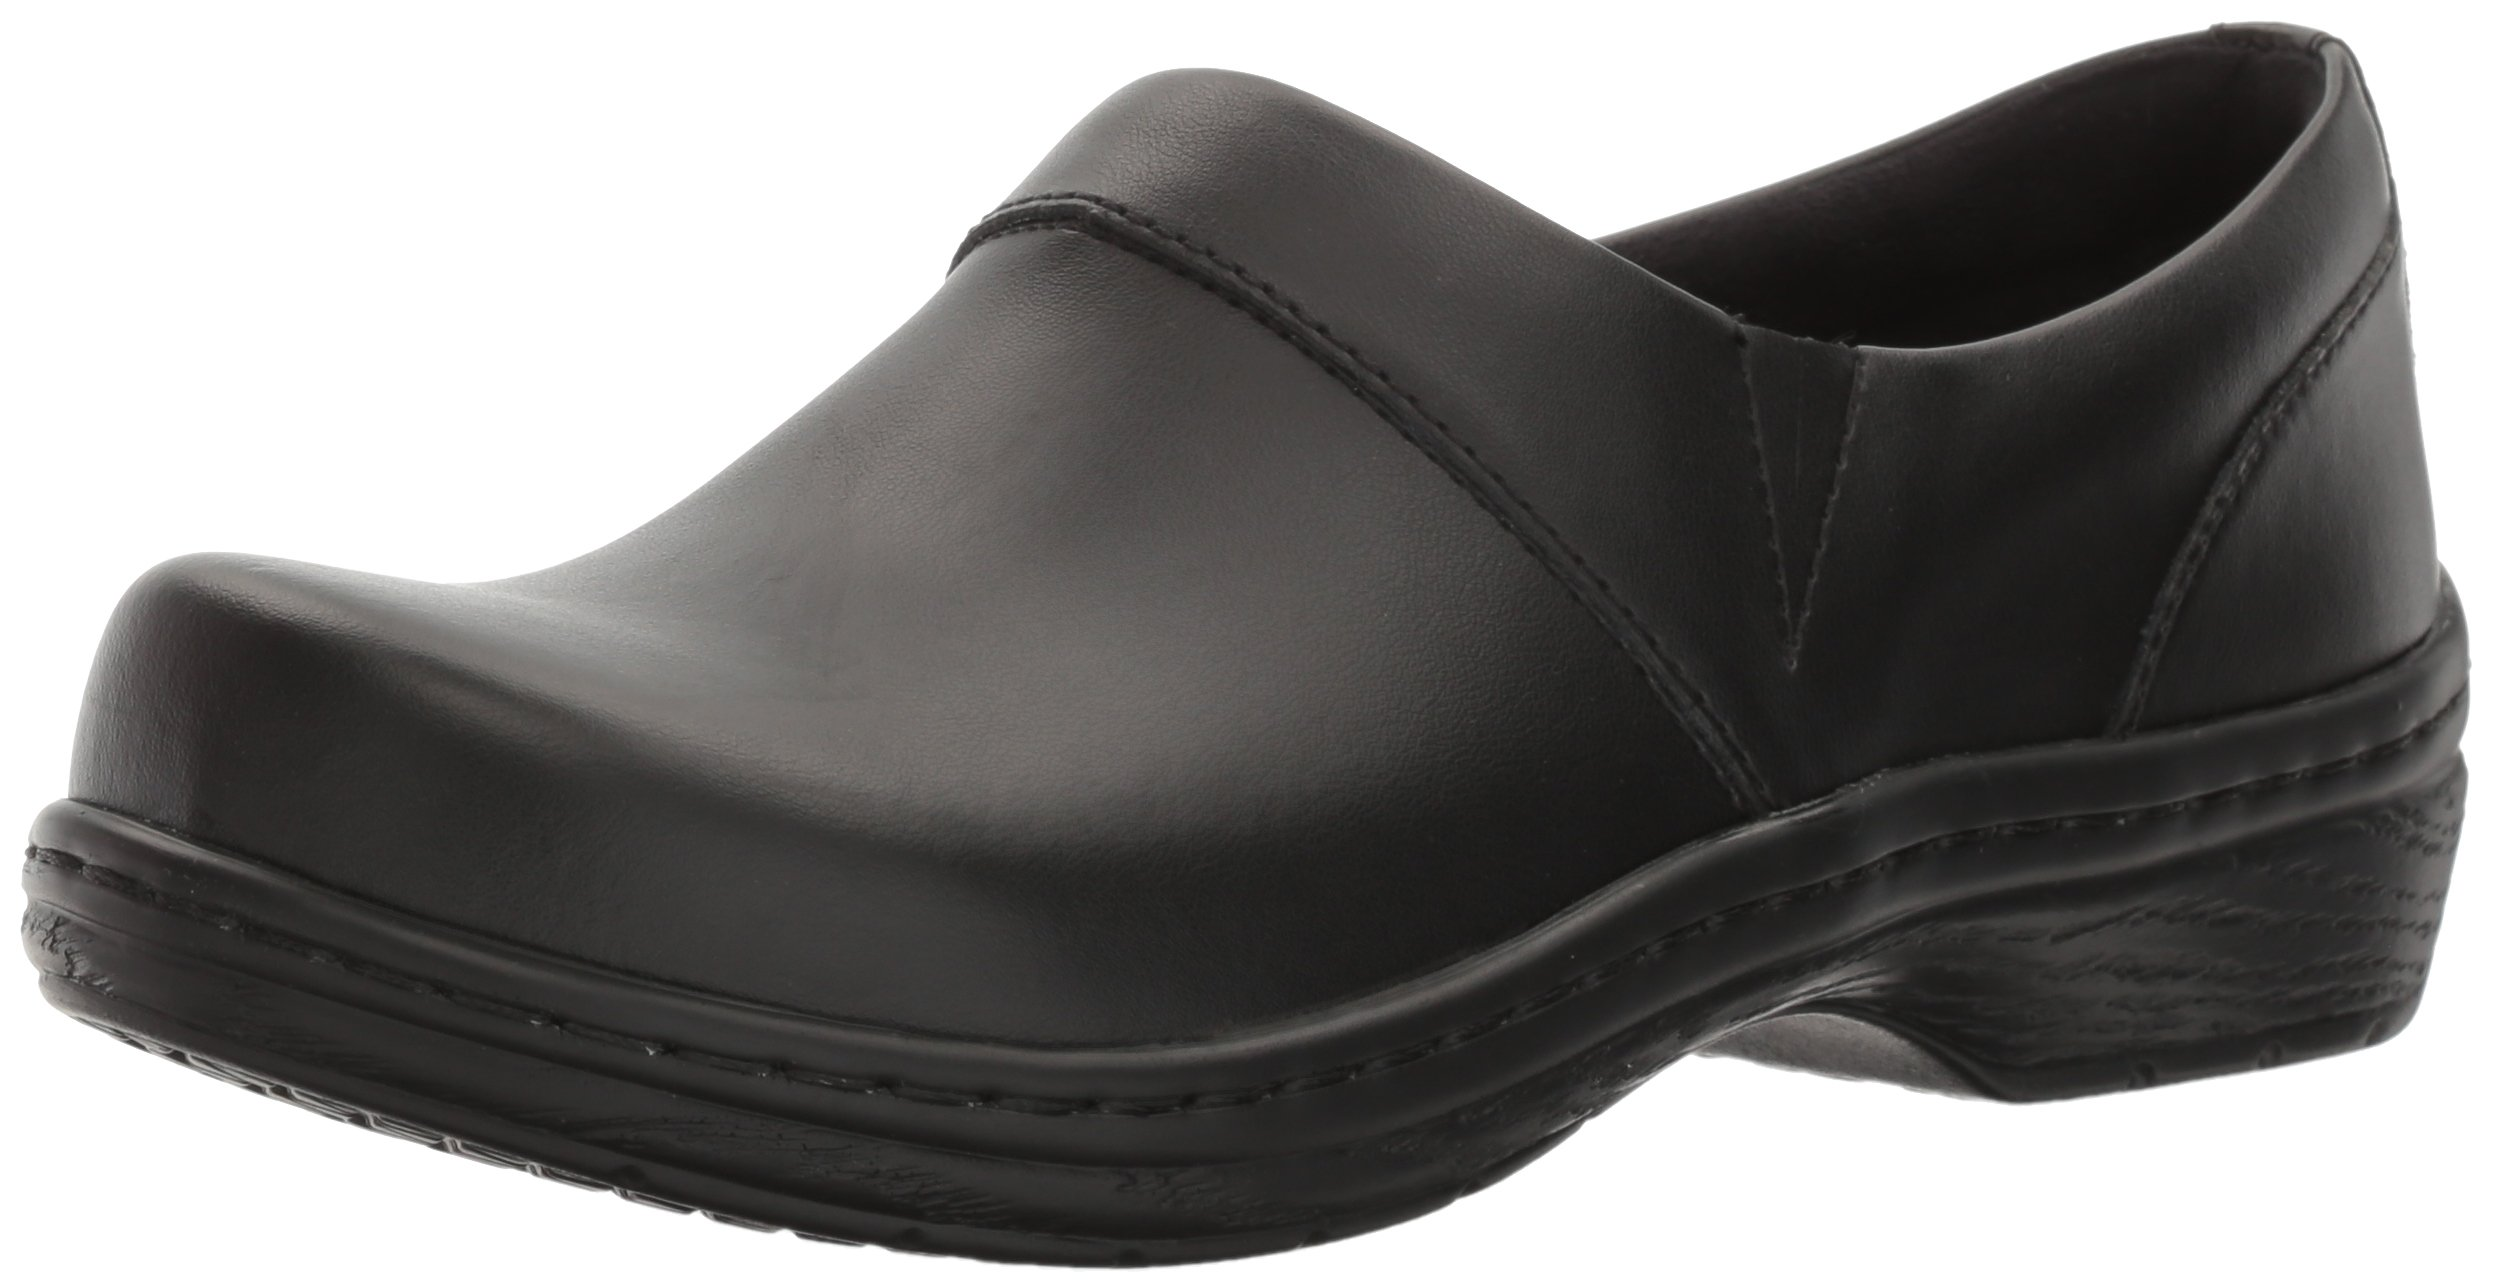 Klogs USA Women's Mission Clog,Black Smooth,8 M US